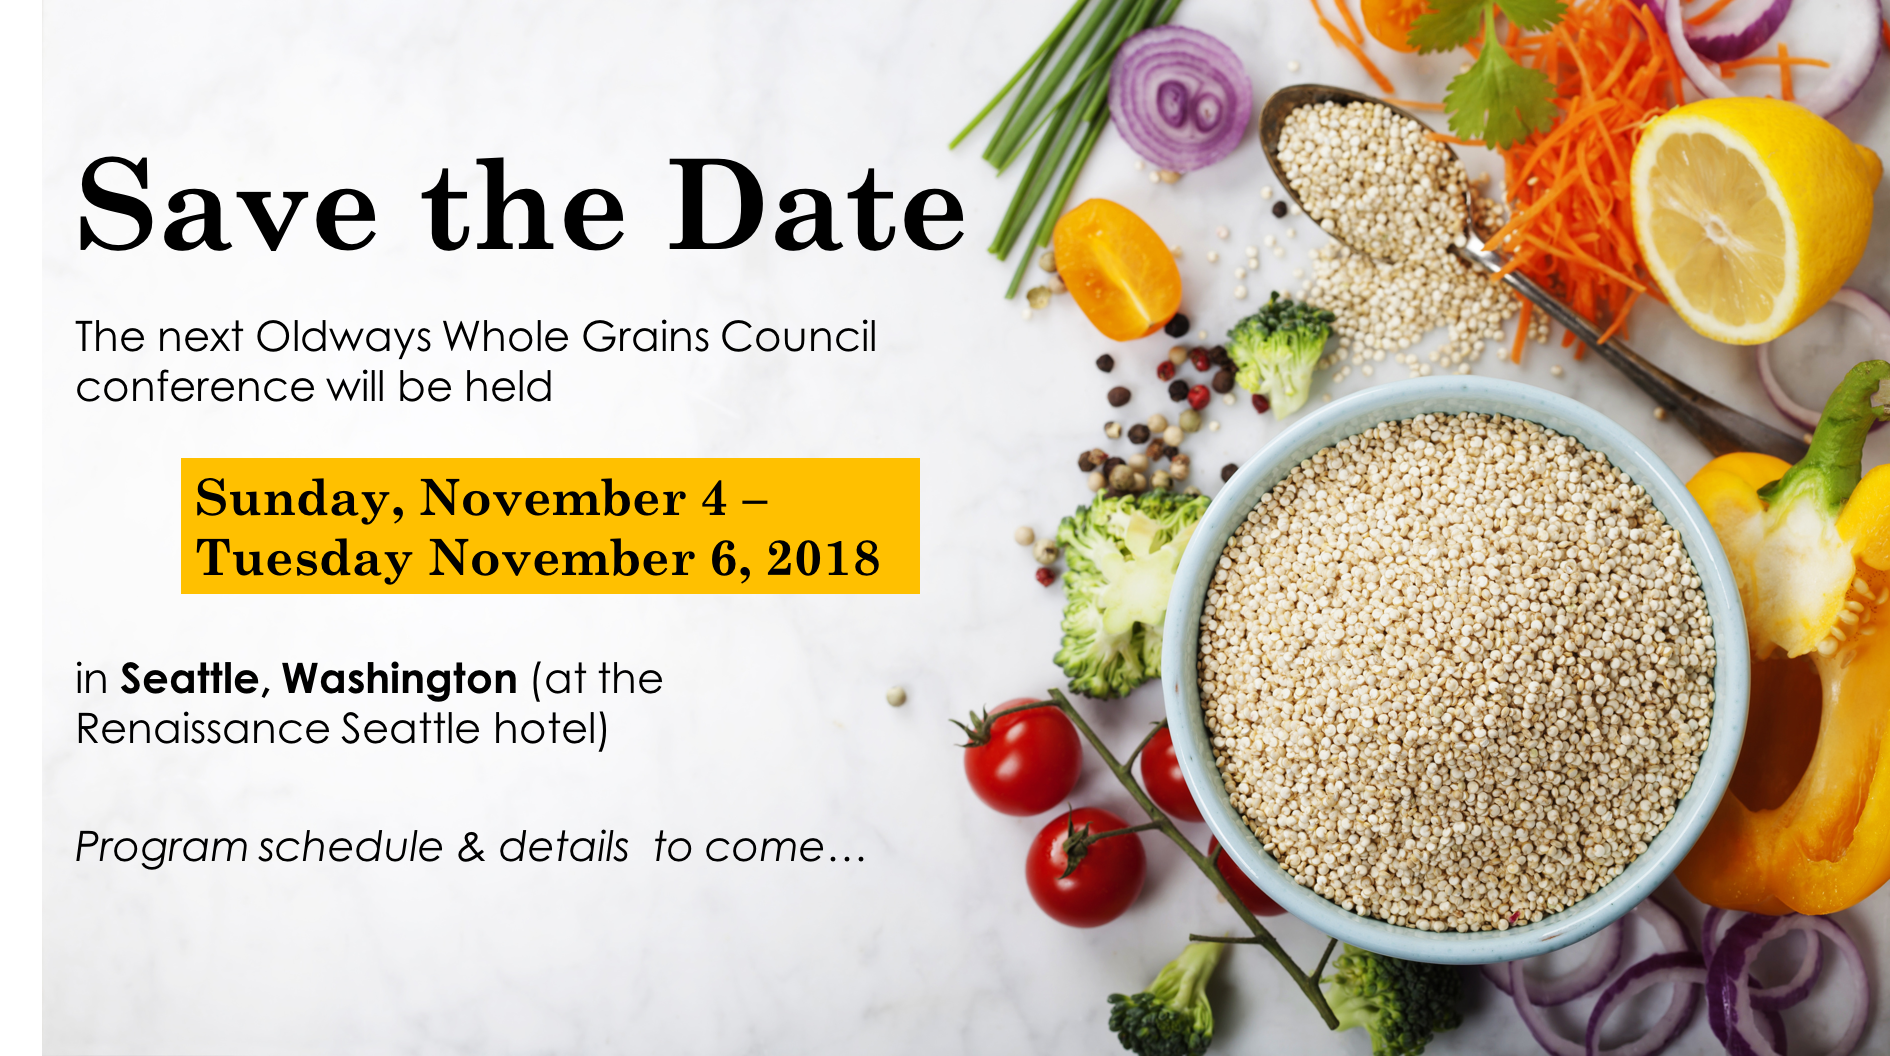 save the date for the next WGC conference, November 4-6, 2018